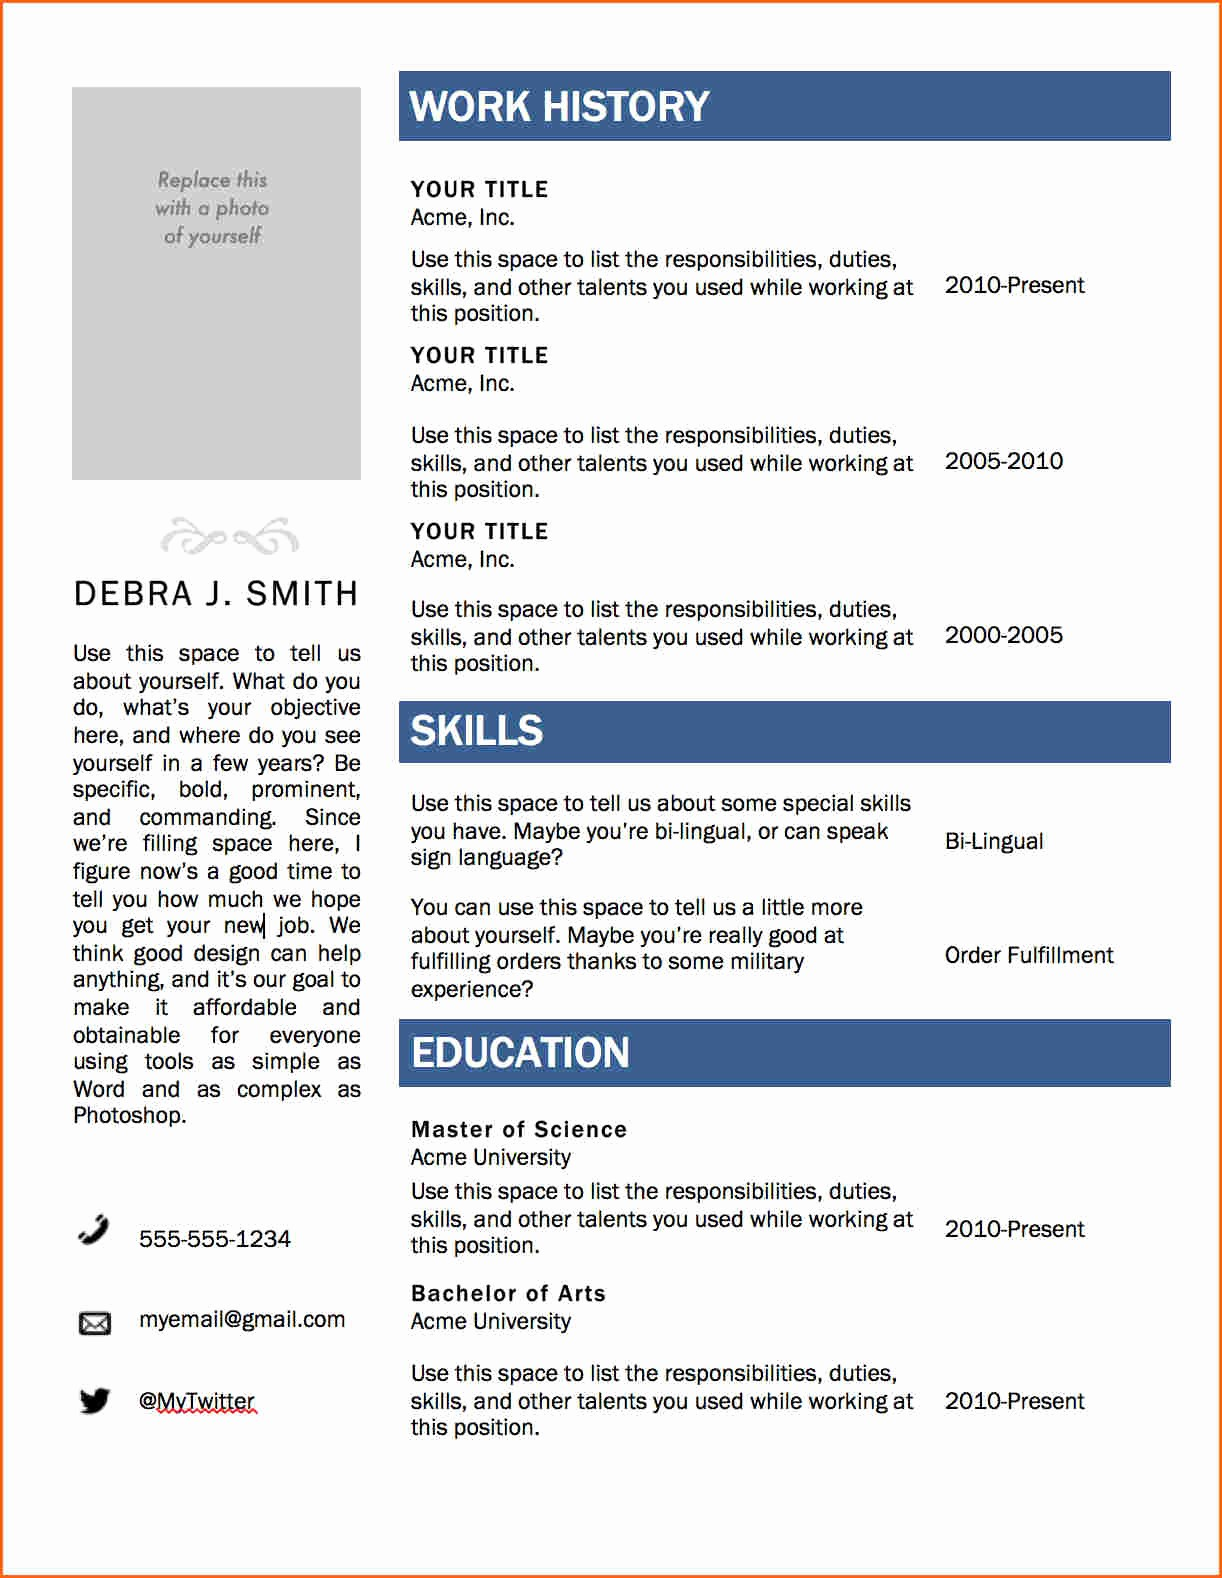 Microsoft Word Template for Resume Lovely 6 Free Resume Templates Microsoft Word 2007 Bud